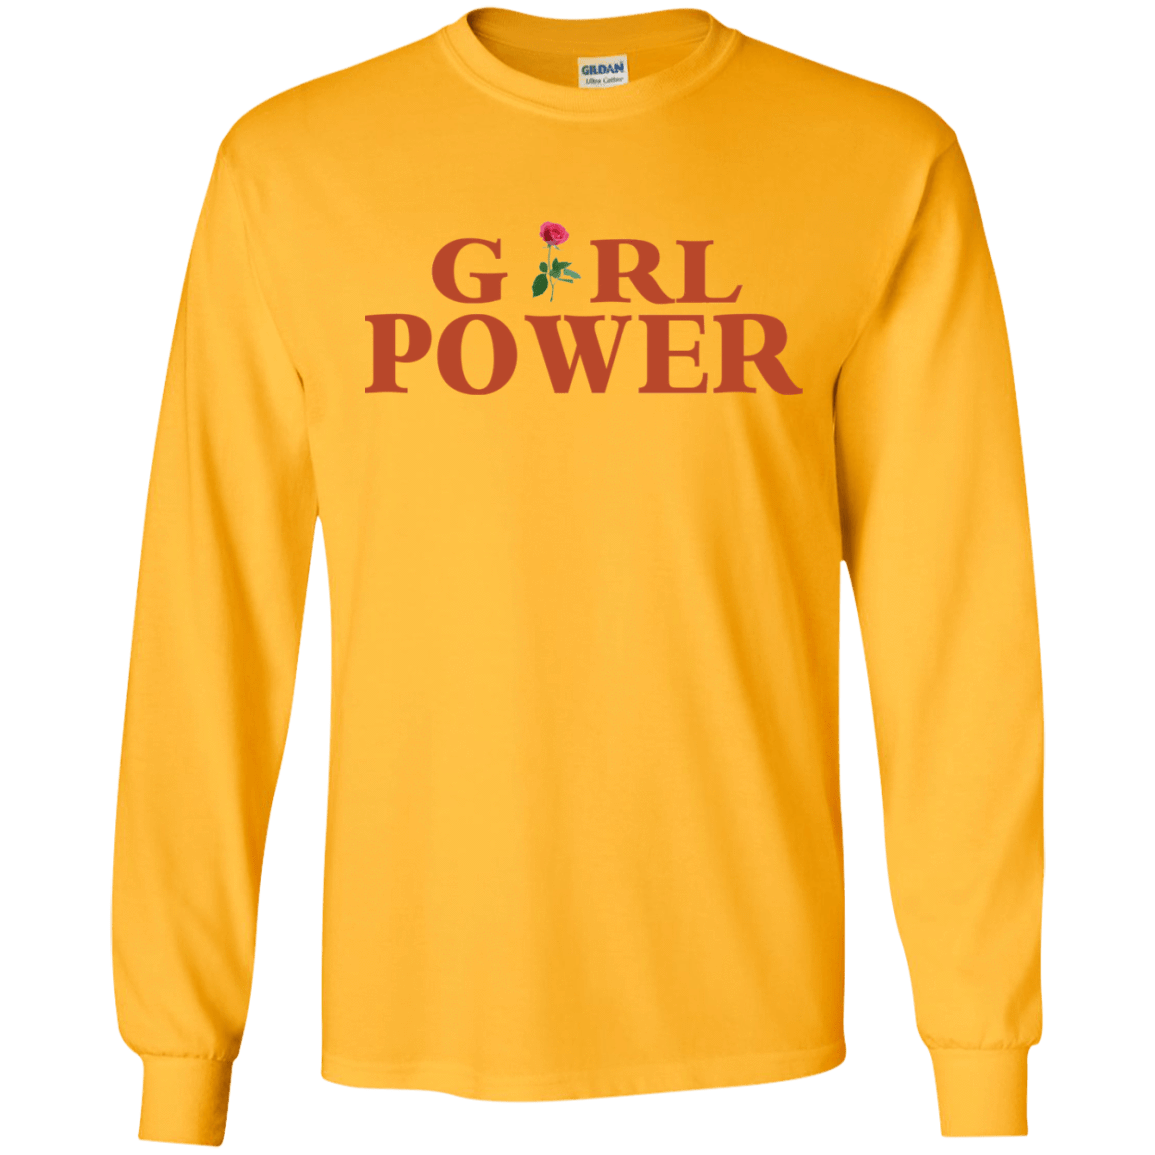 Girl Power Yellow 30-2108-73890287-10730 - Tee Ript